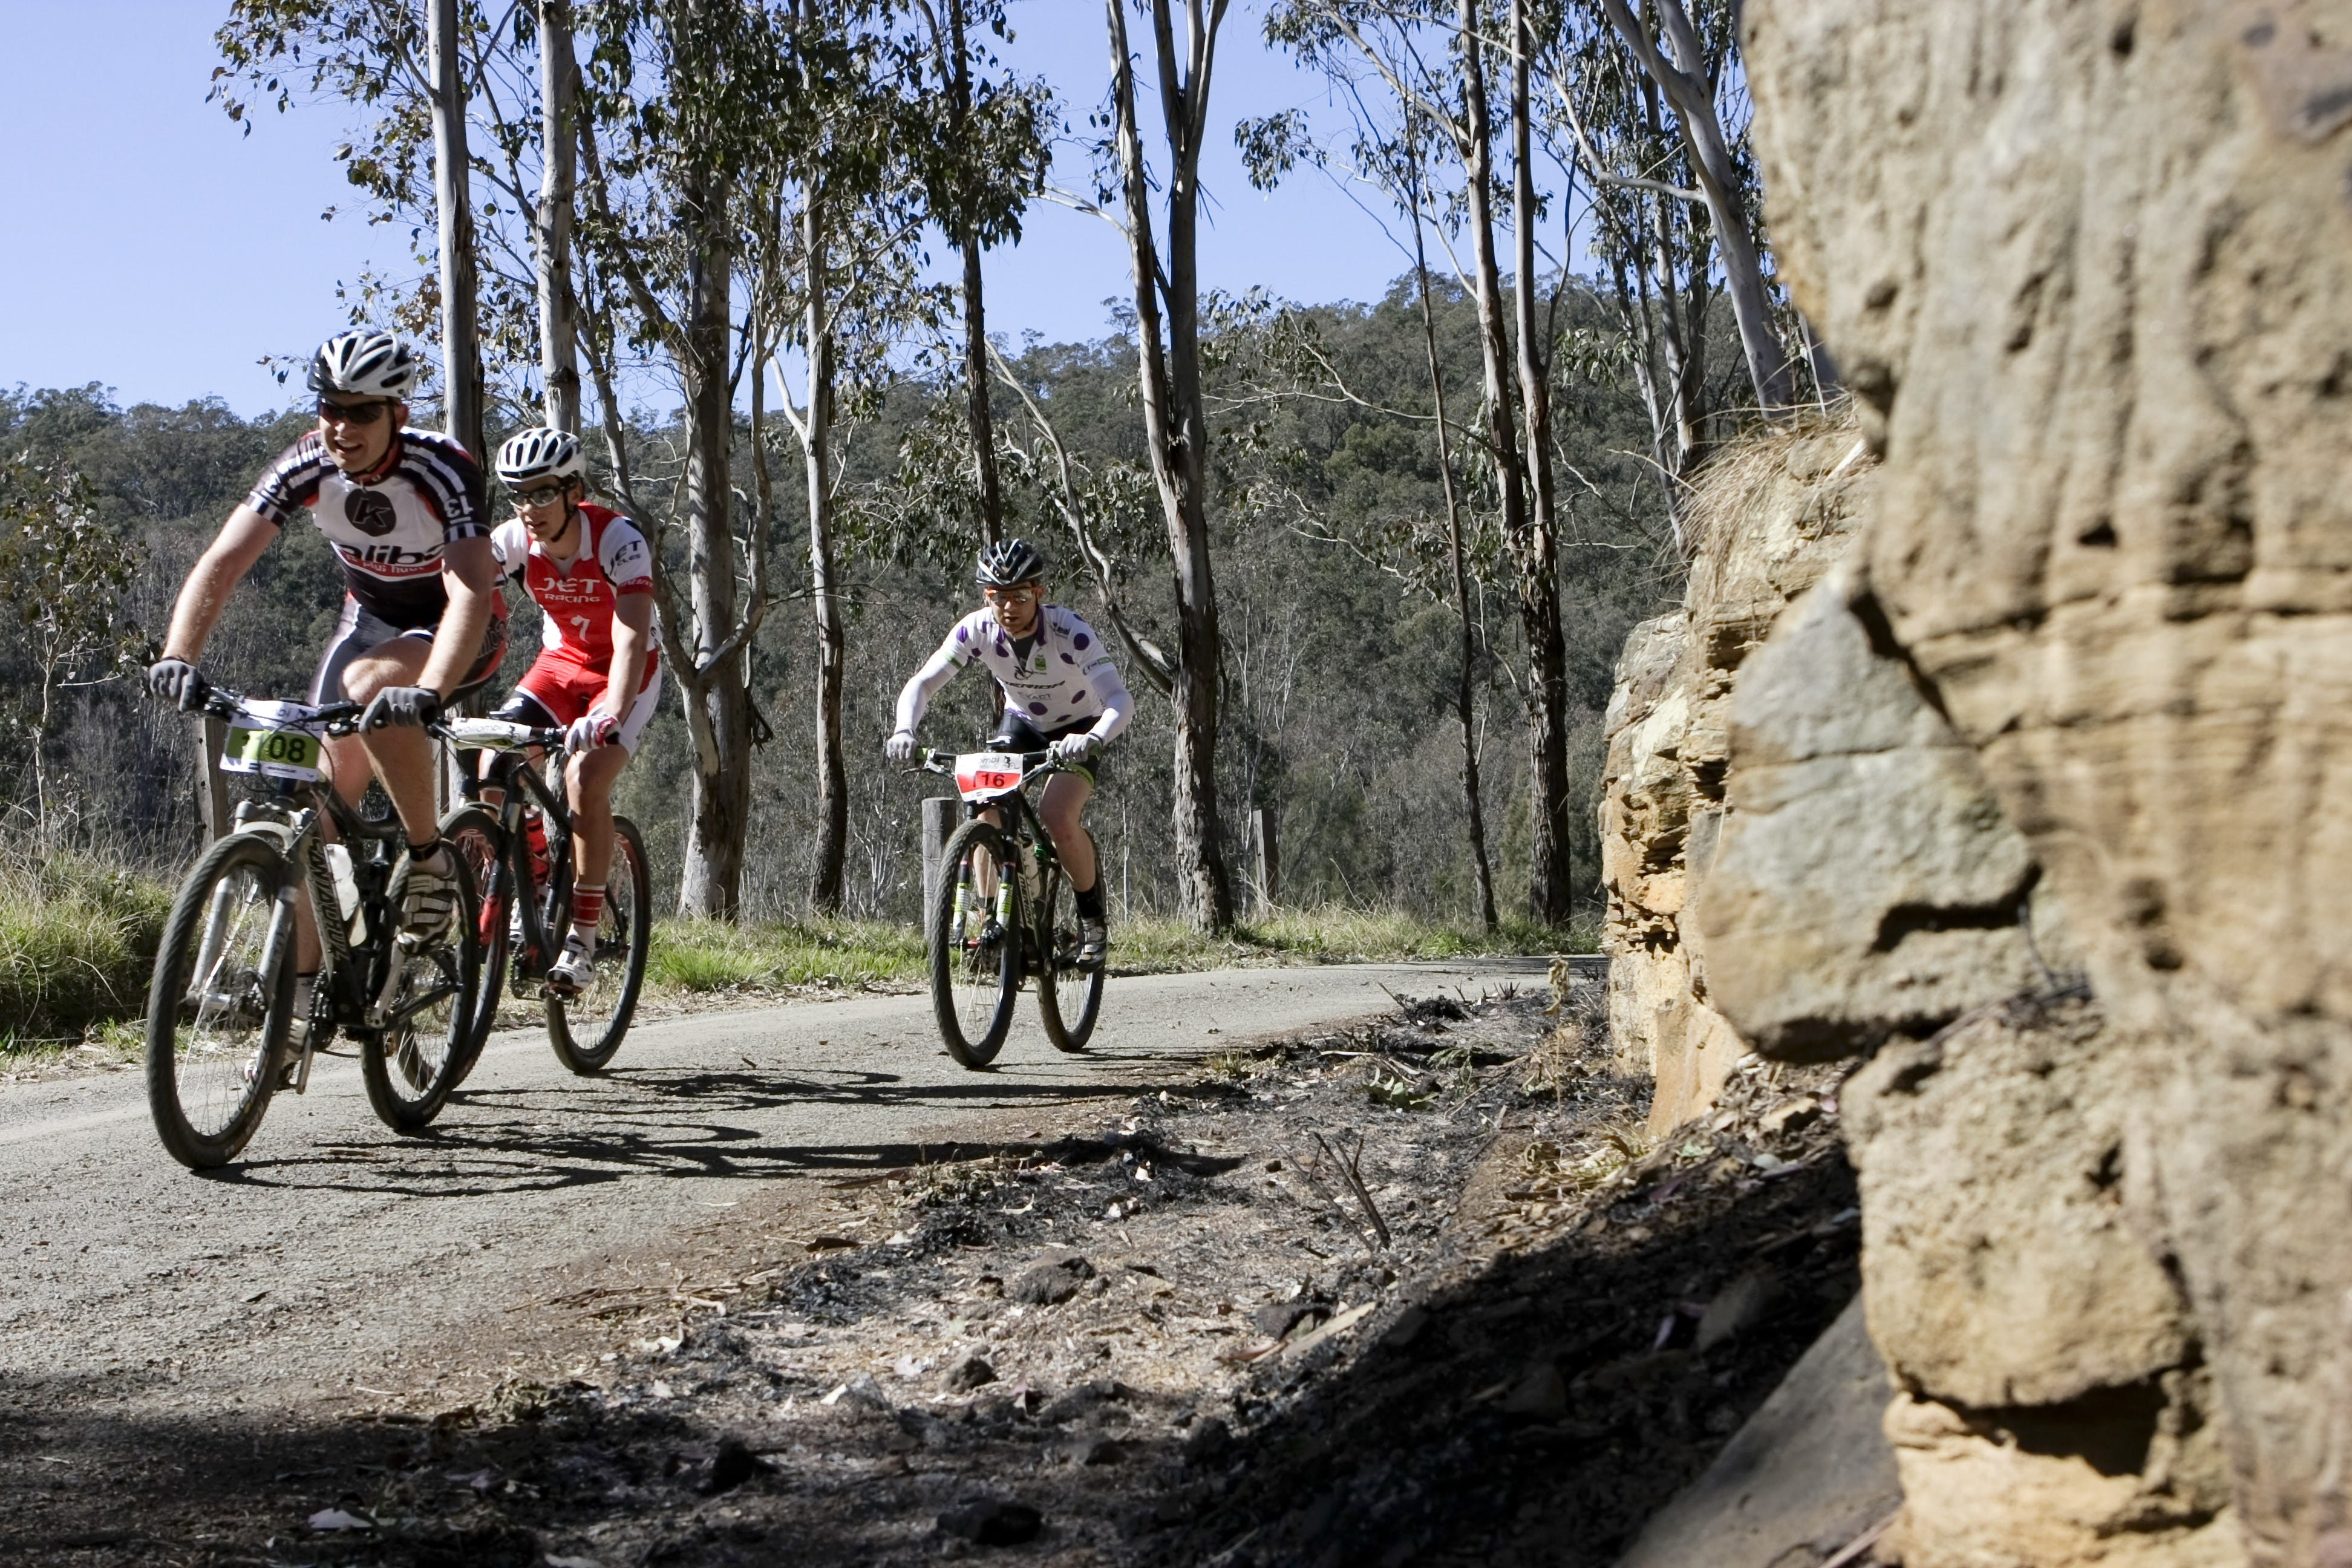 Wollombi Wild Ride Mountain Bike Ride - Tourism Gold Coast